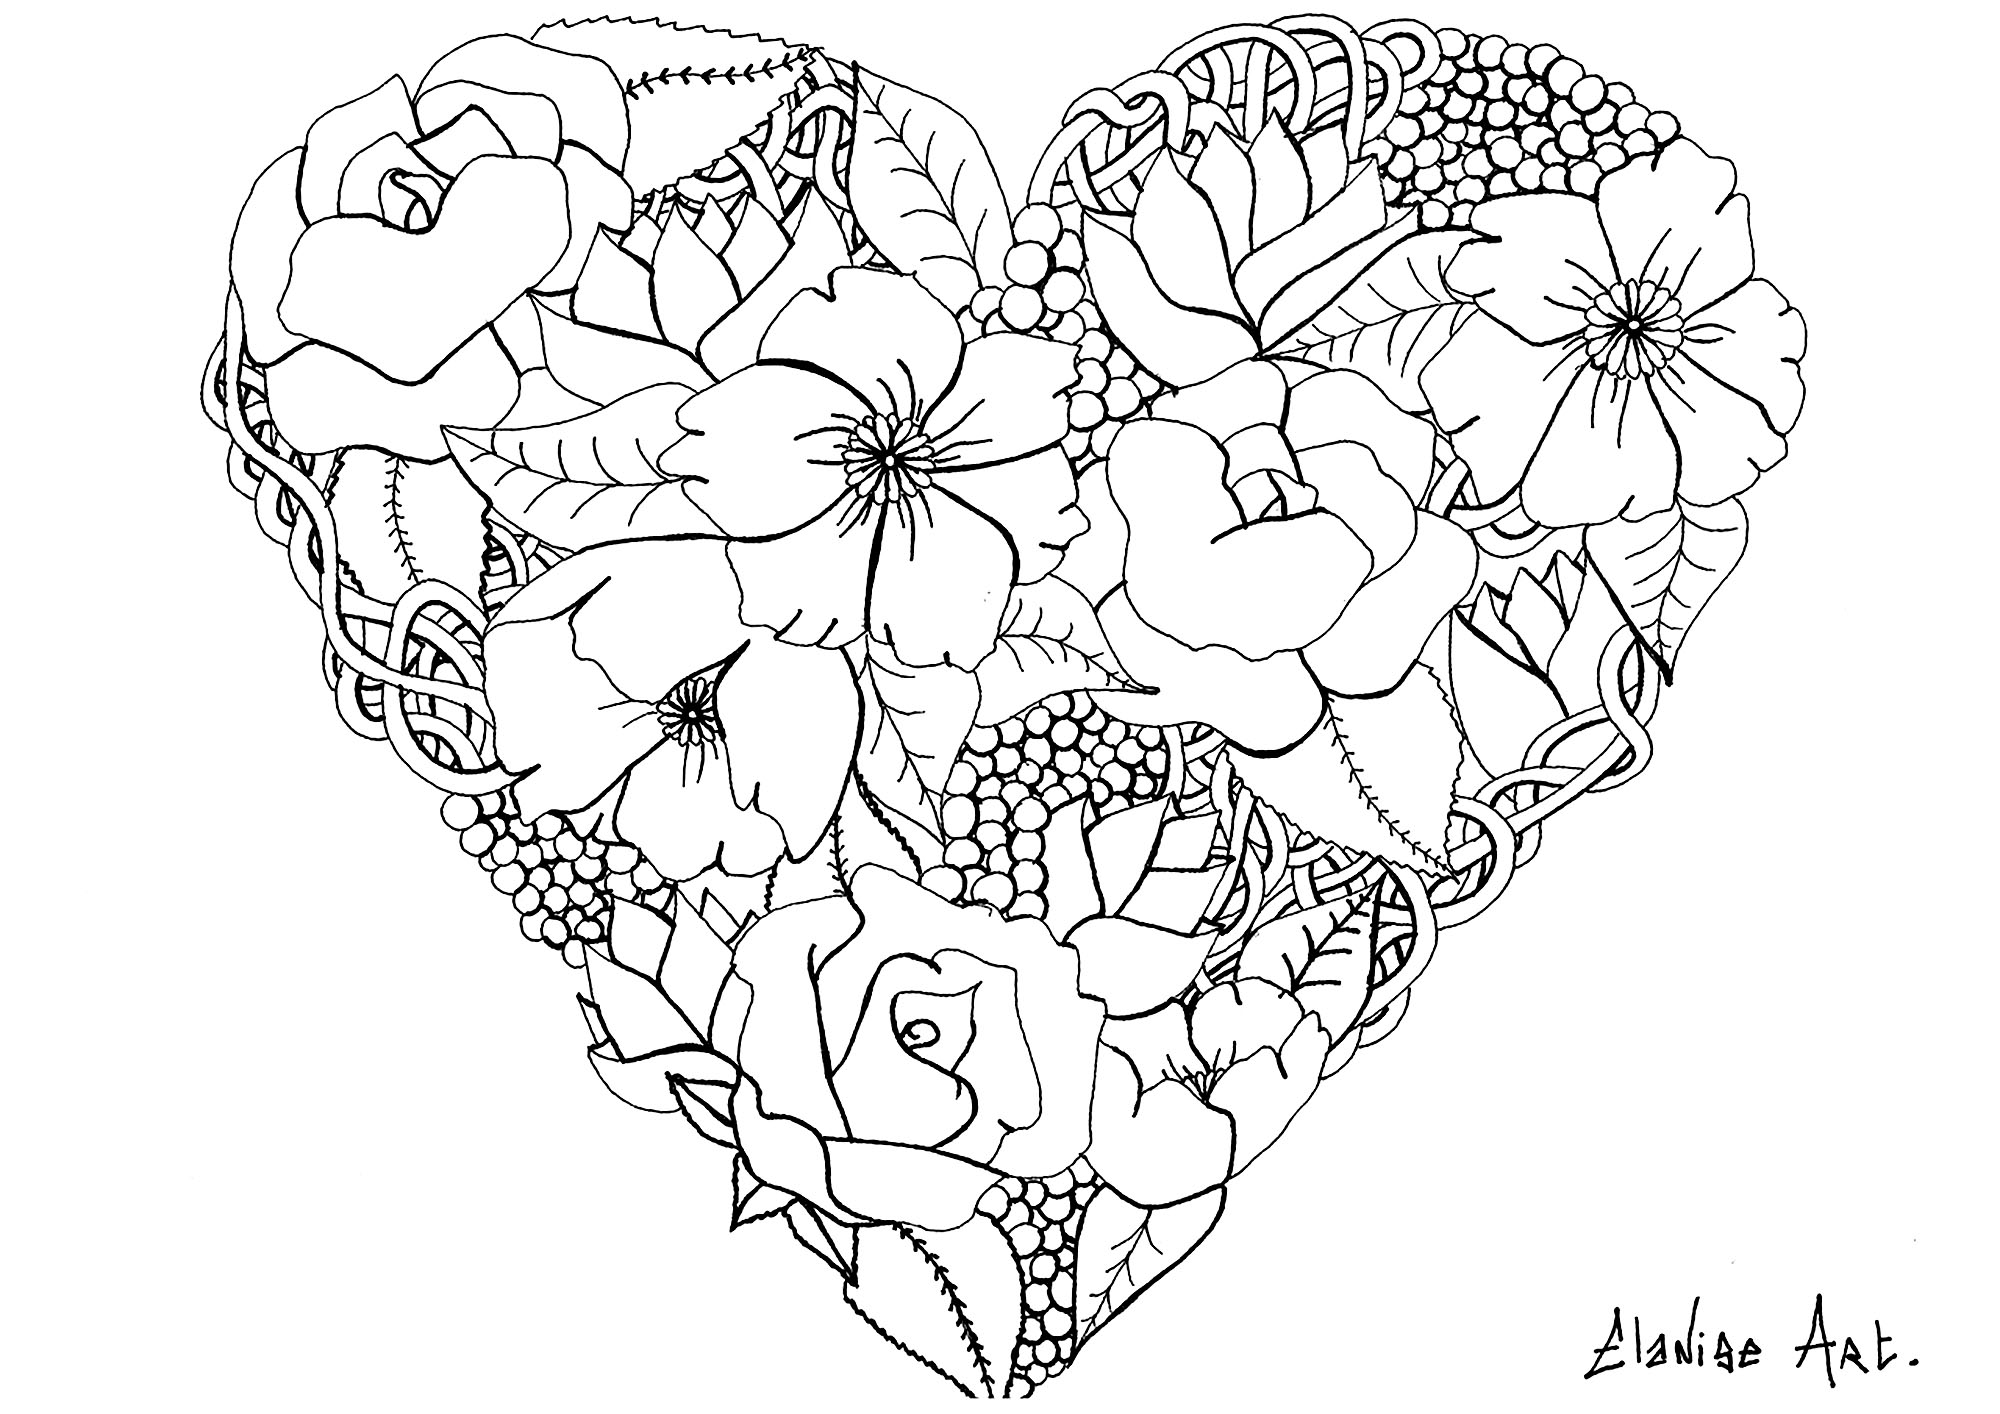 Flowers & vegetation - Coloring Pages for Adults